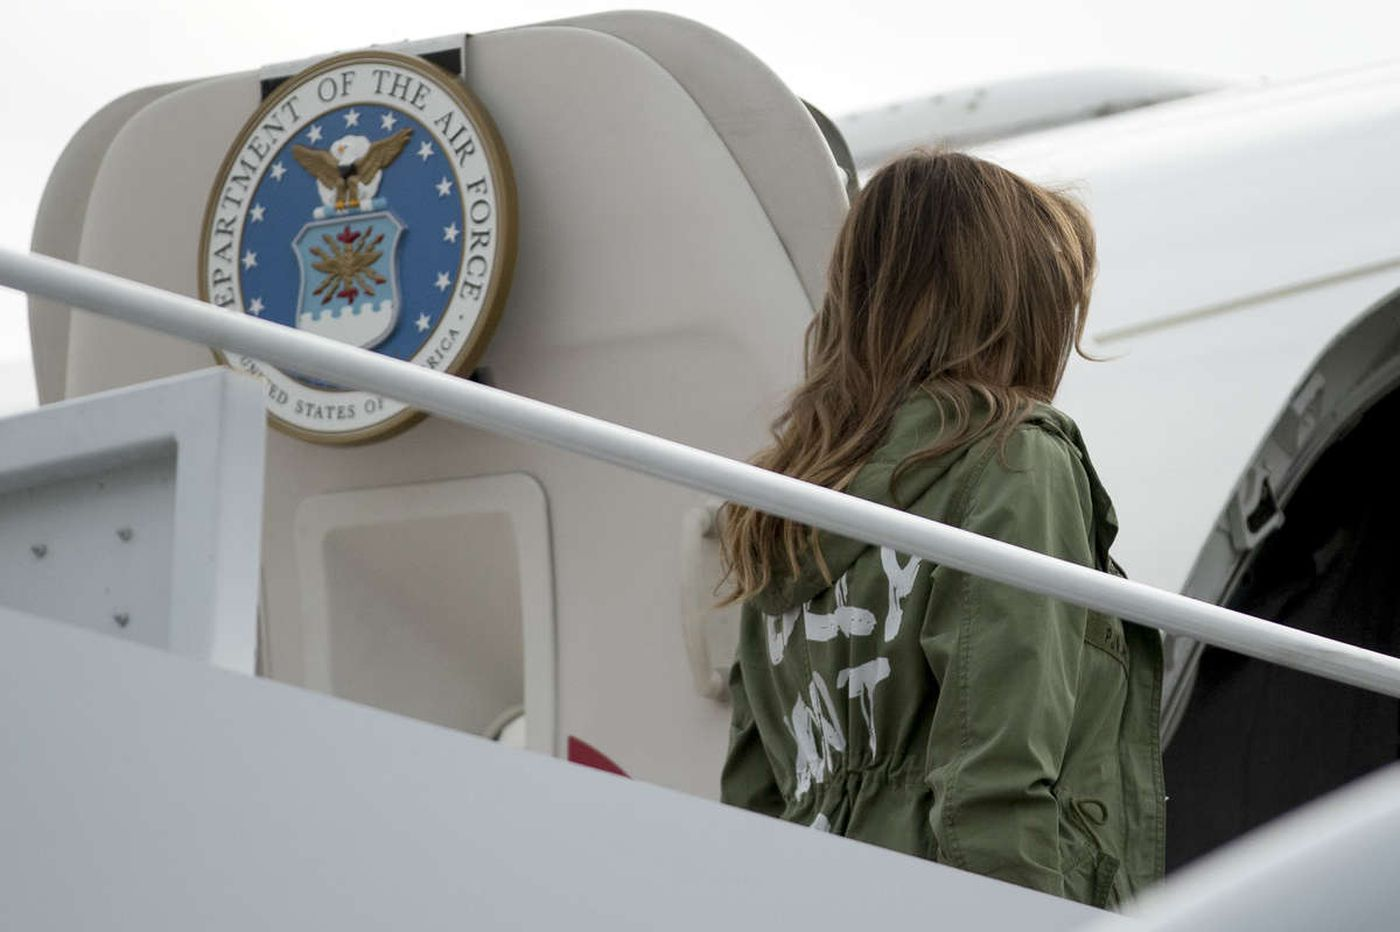 Don't be distracted from the immigration crisis by Melania Trump's fake fashion choice | Jenice Armstrong